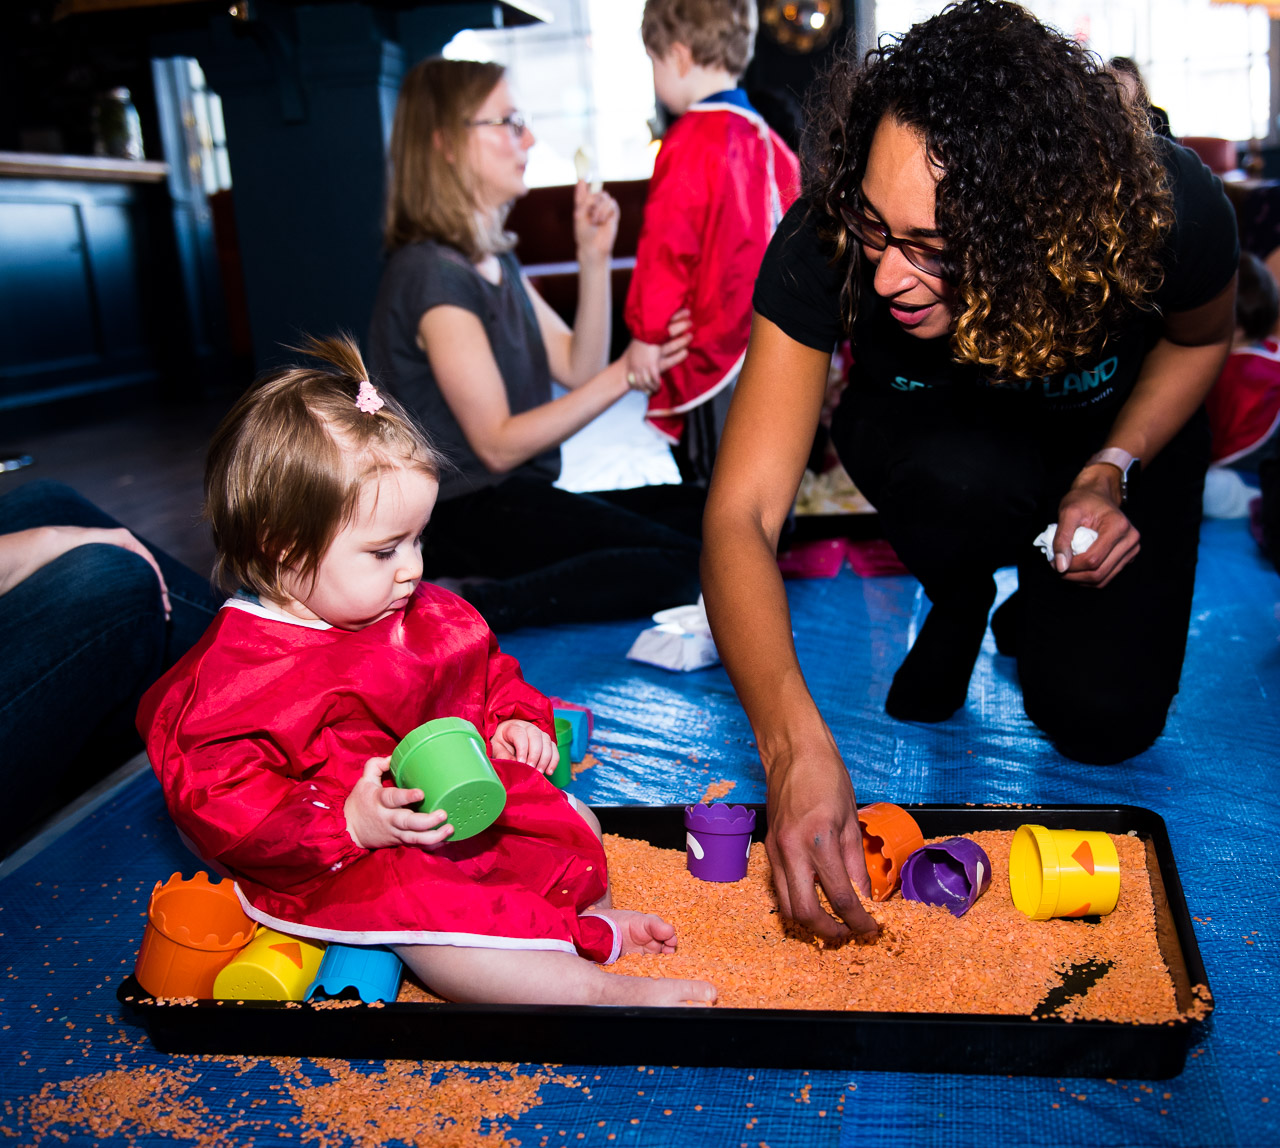 Little girl sitting in messy play tray filled with lentils